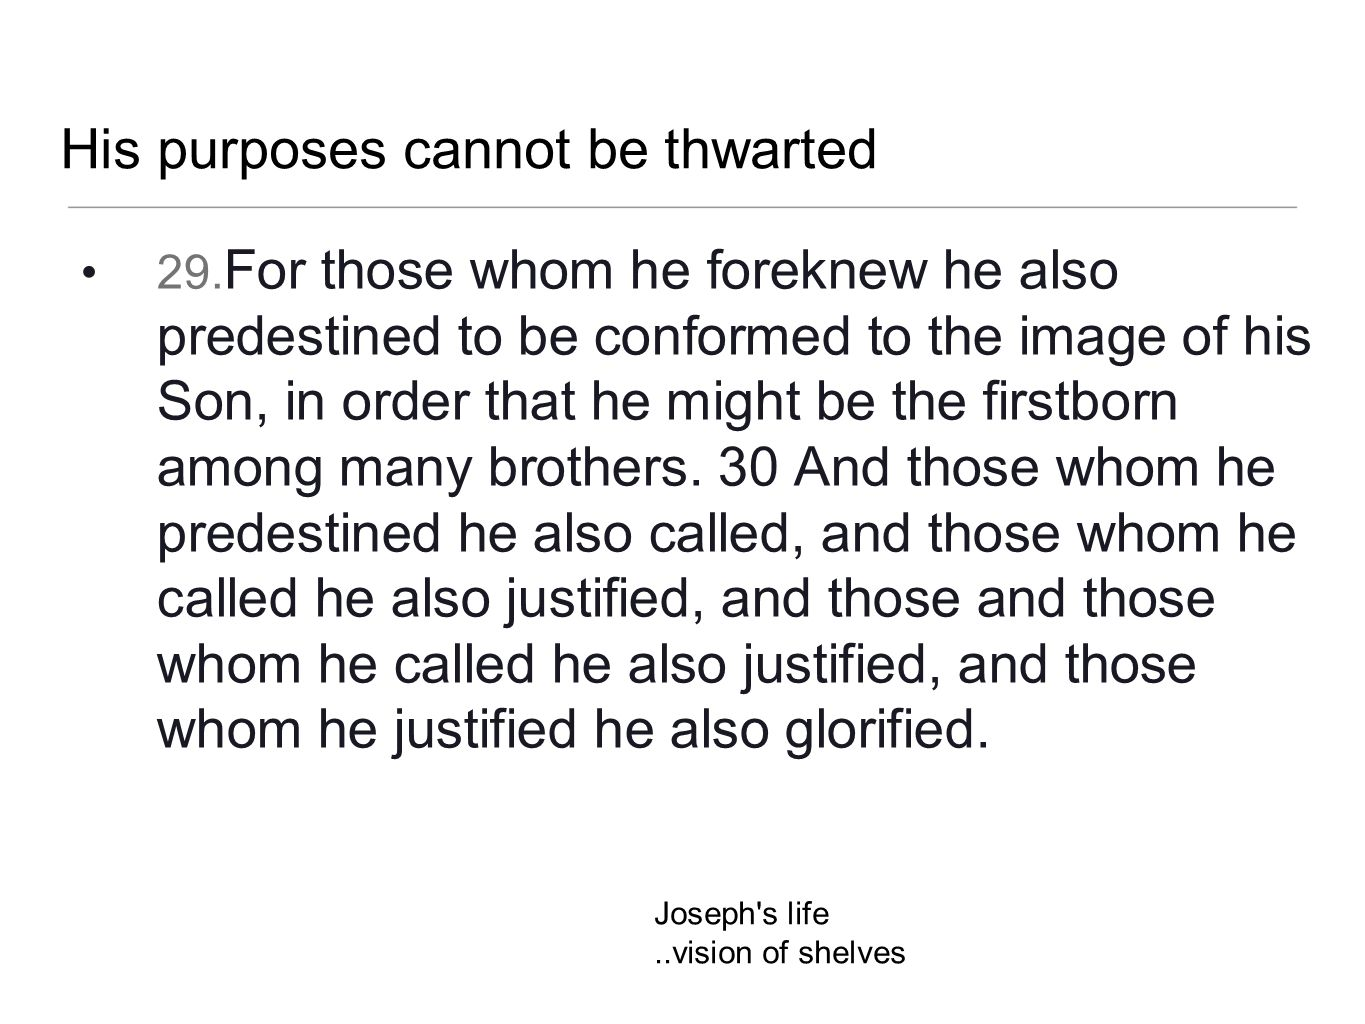 His purposes cannot be thwarted 29. For those whom he foreknew he also predestined to be conformed to the image of his Son, in order that he might be